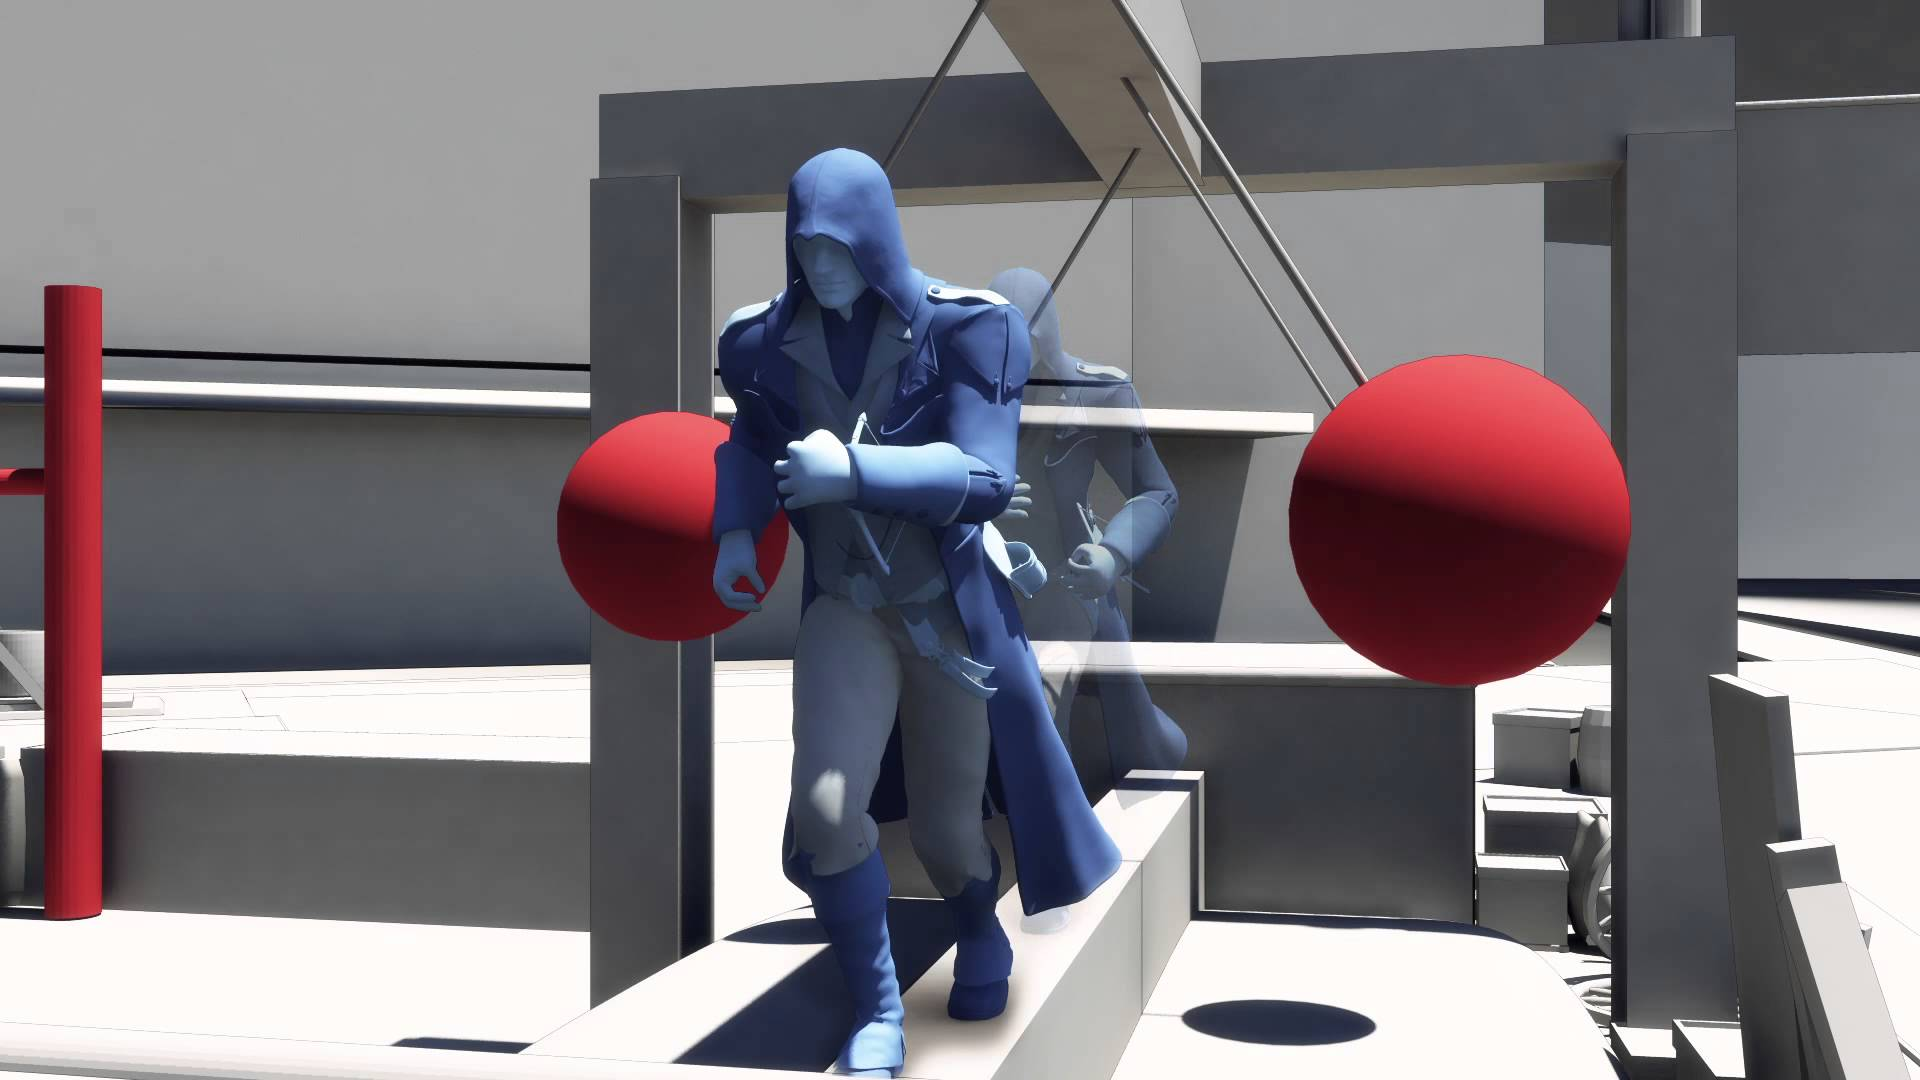 assassin's creed parkour experience